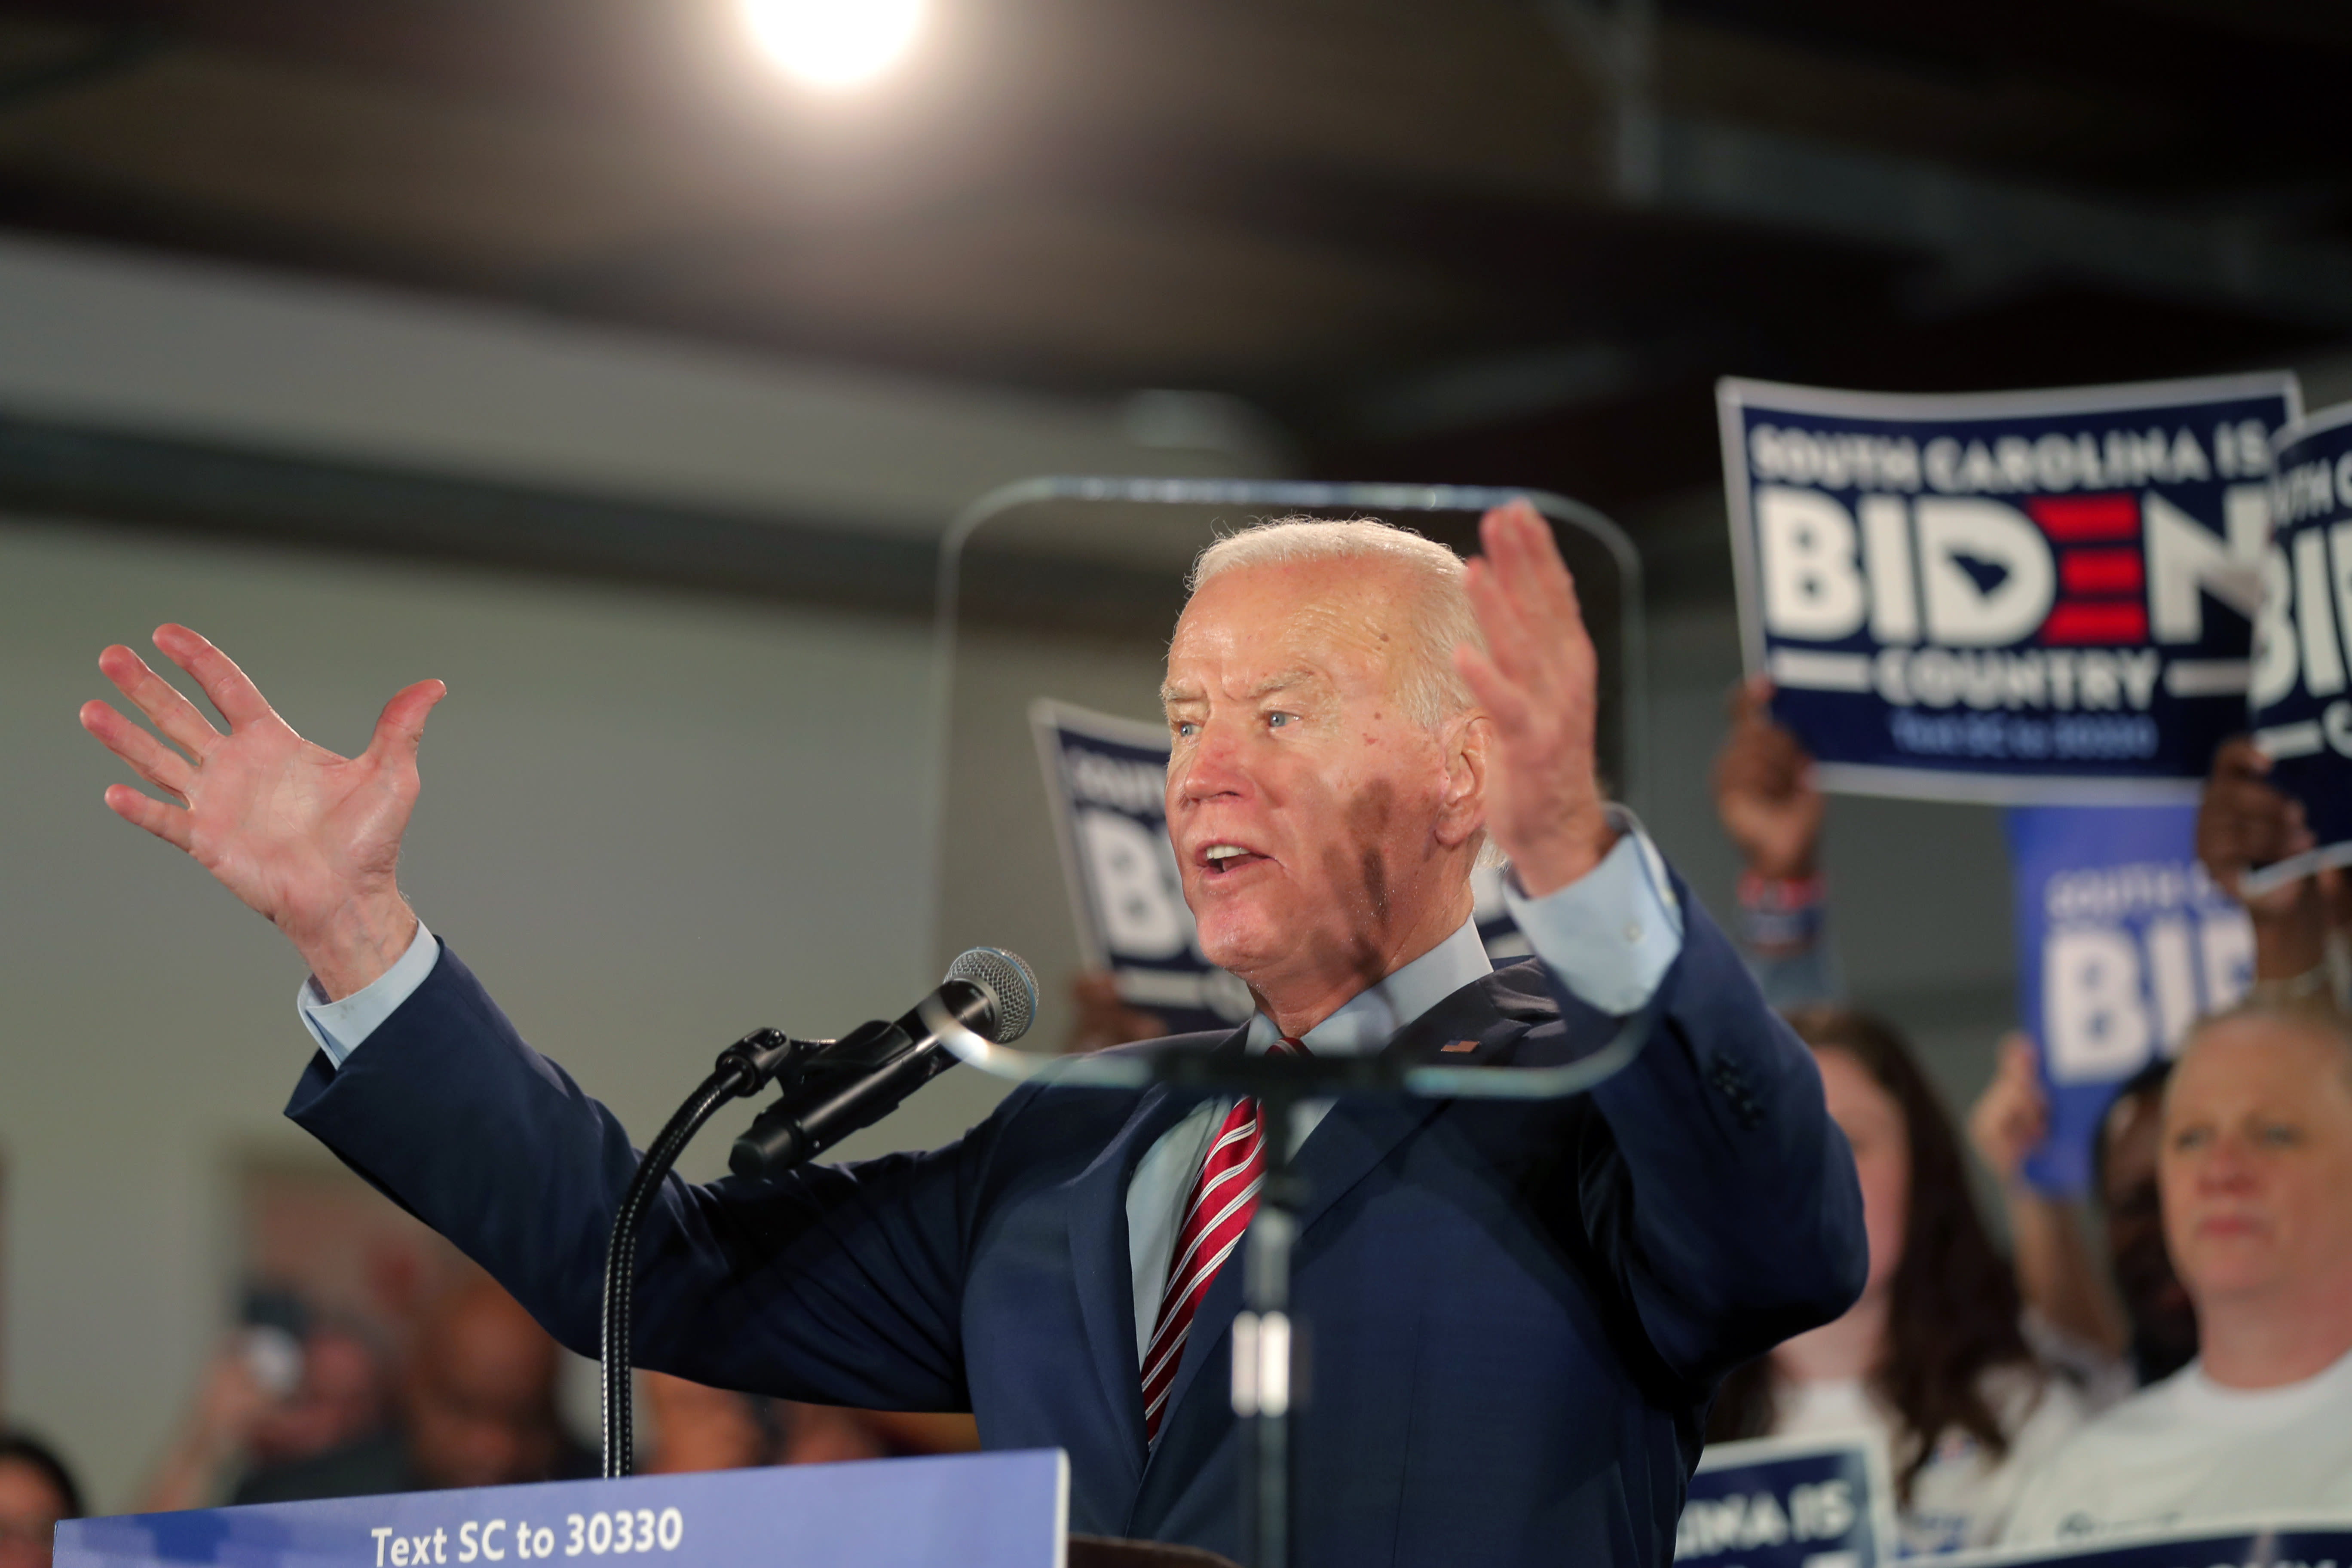 Democratic presidential candidate former Vice President Joe Biden speaks at a campaign event in Columbia, S.C., Tuesday, Feb. 11, 2020. (AP Photo/Gerald Herbert)